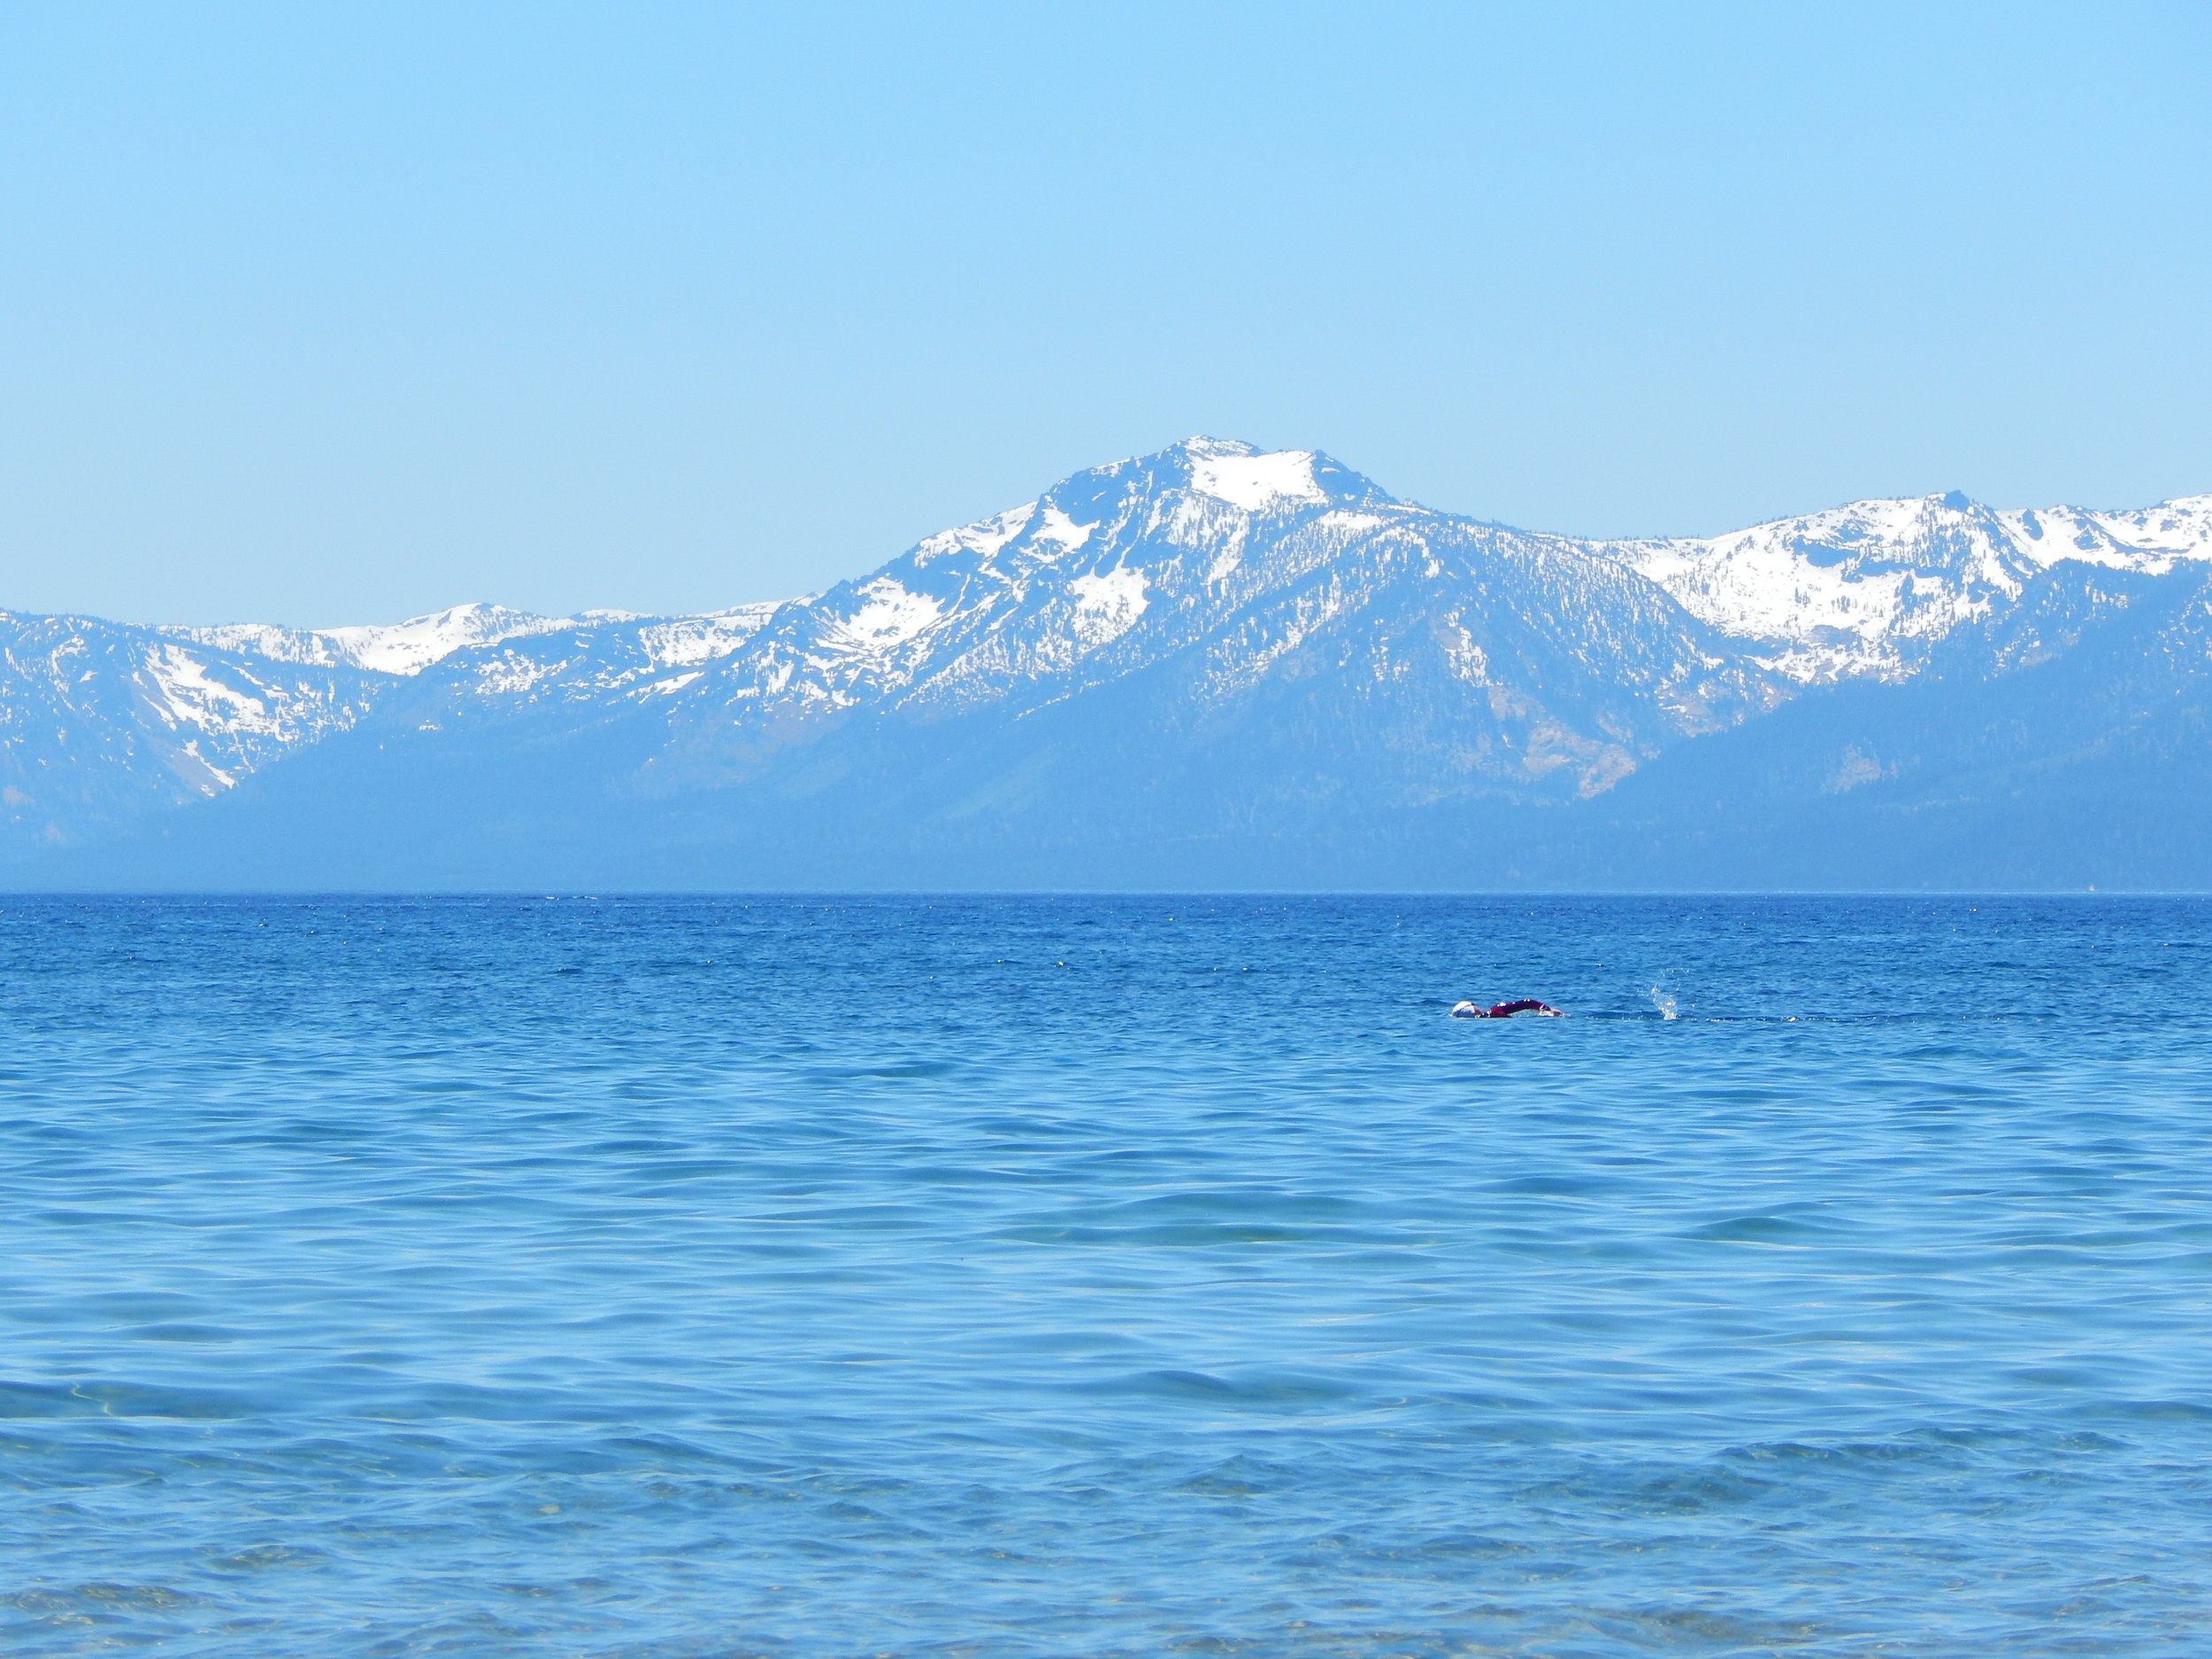 Michael, acclimation training in Lake Tahoe, CA. April 2014.